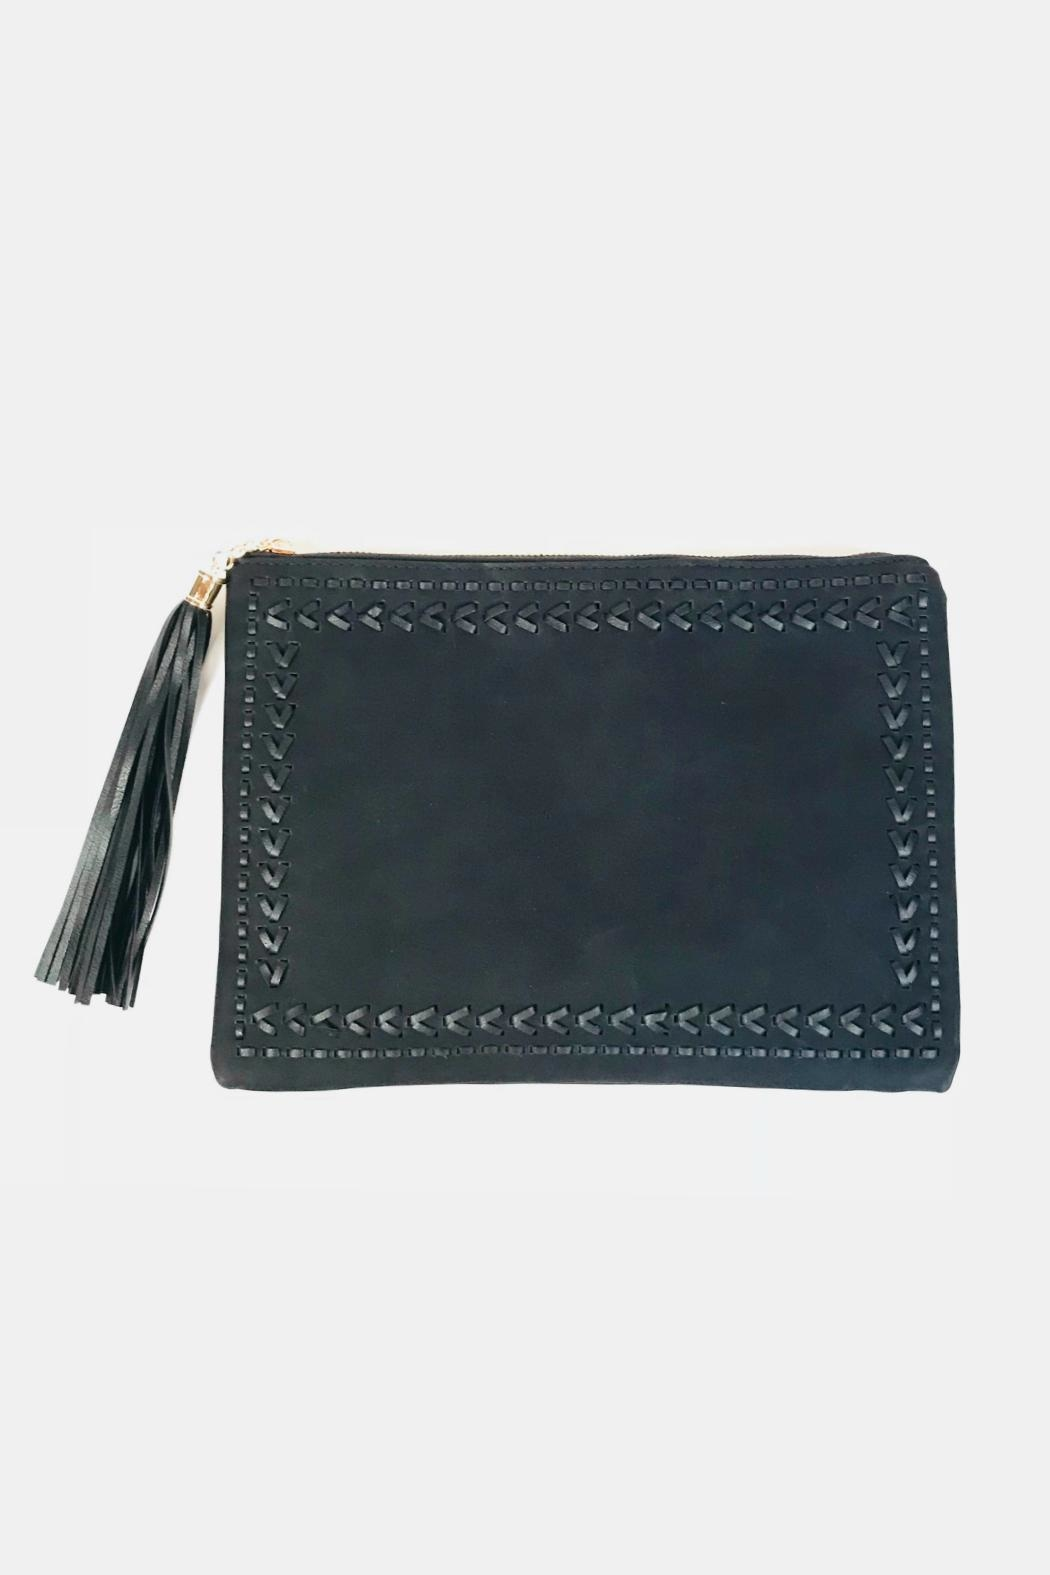 Handbag Republic Stitched Tassel Clutch - Main Image